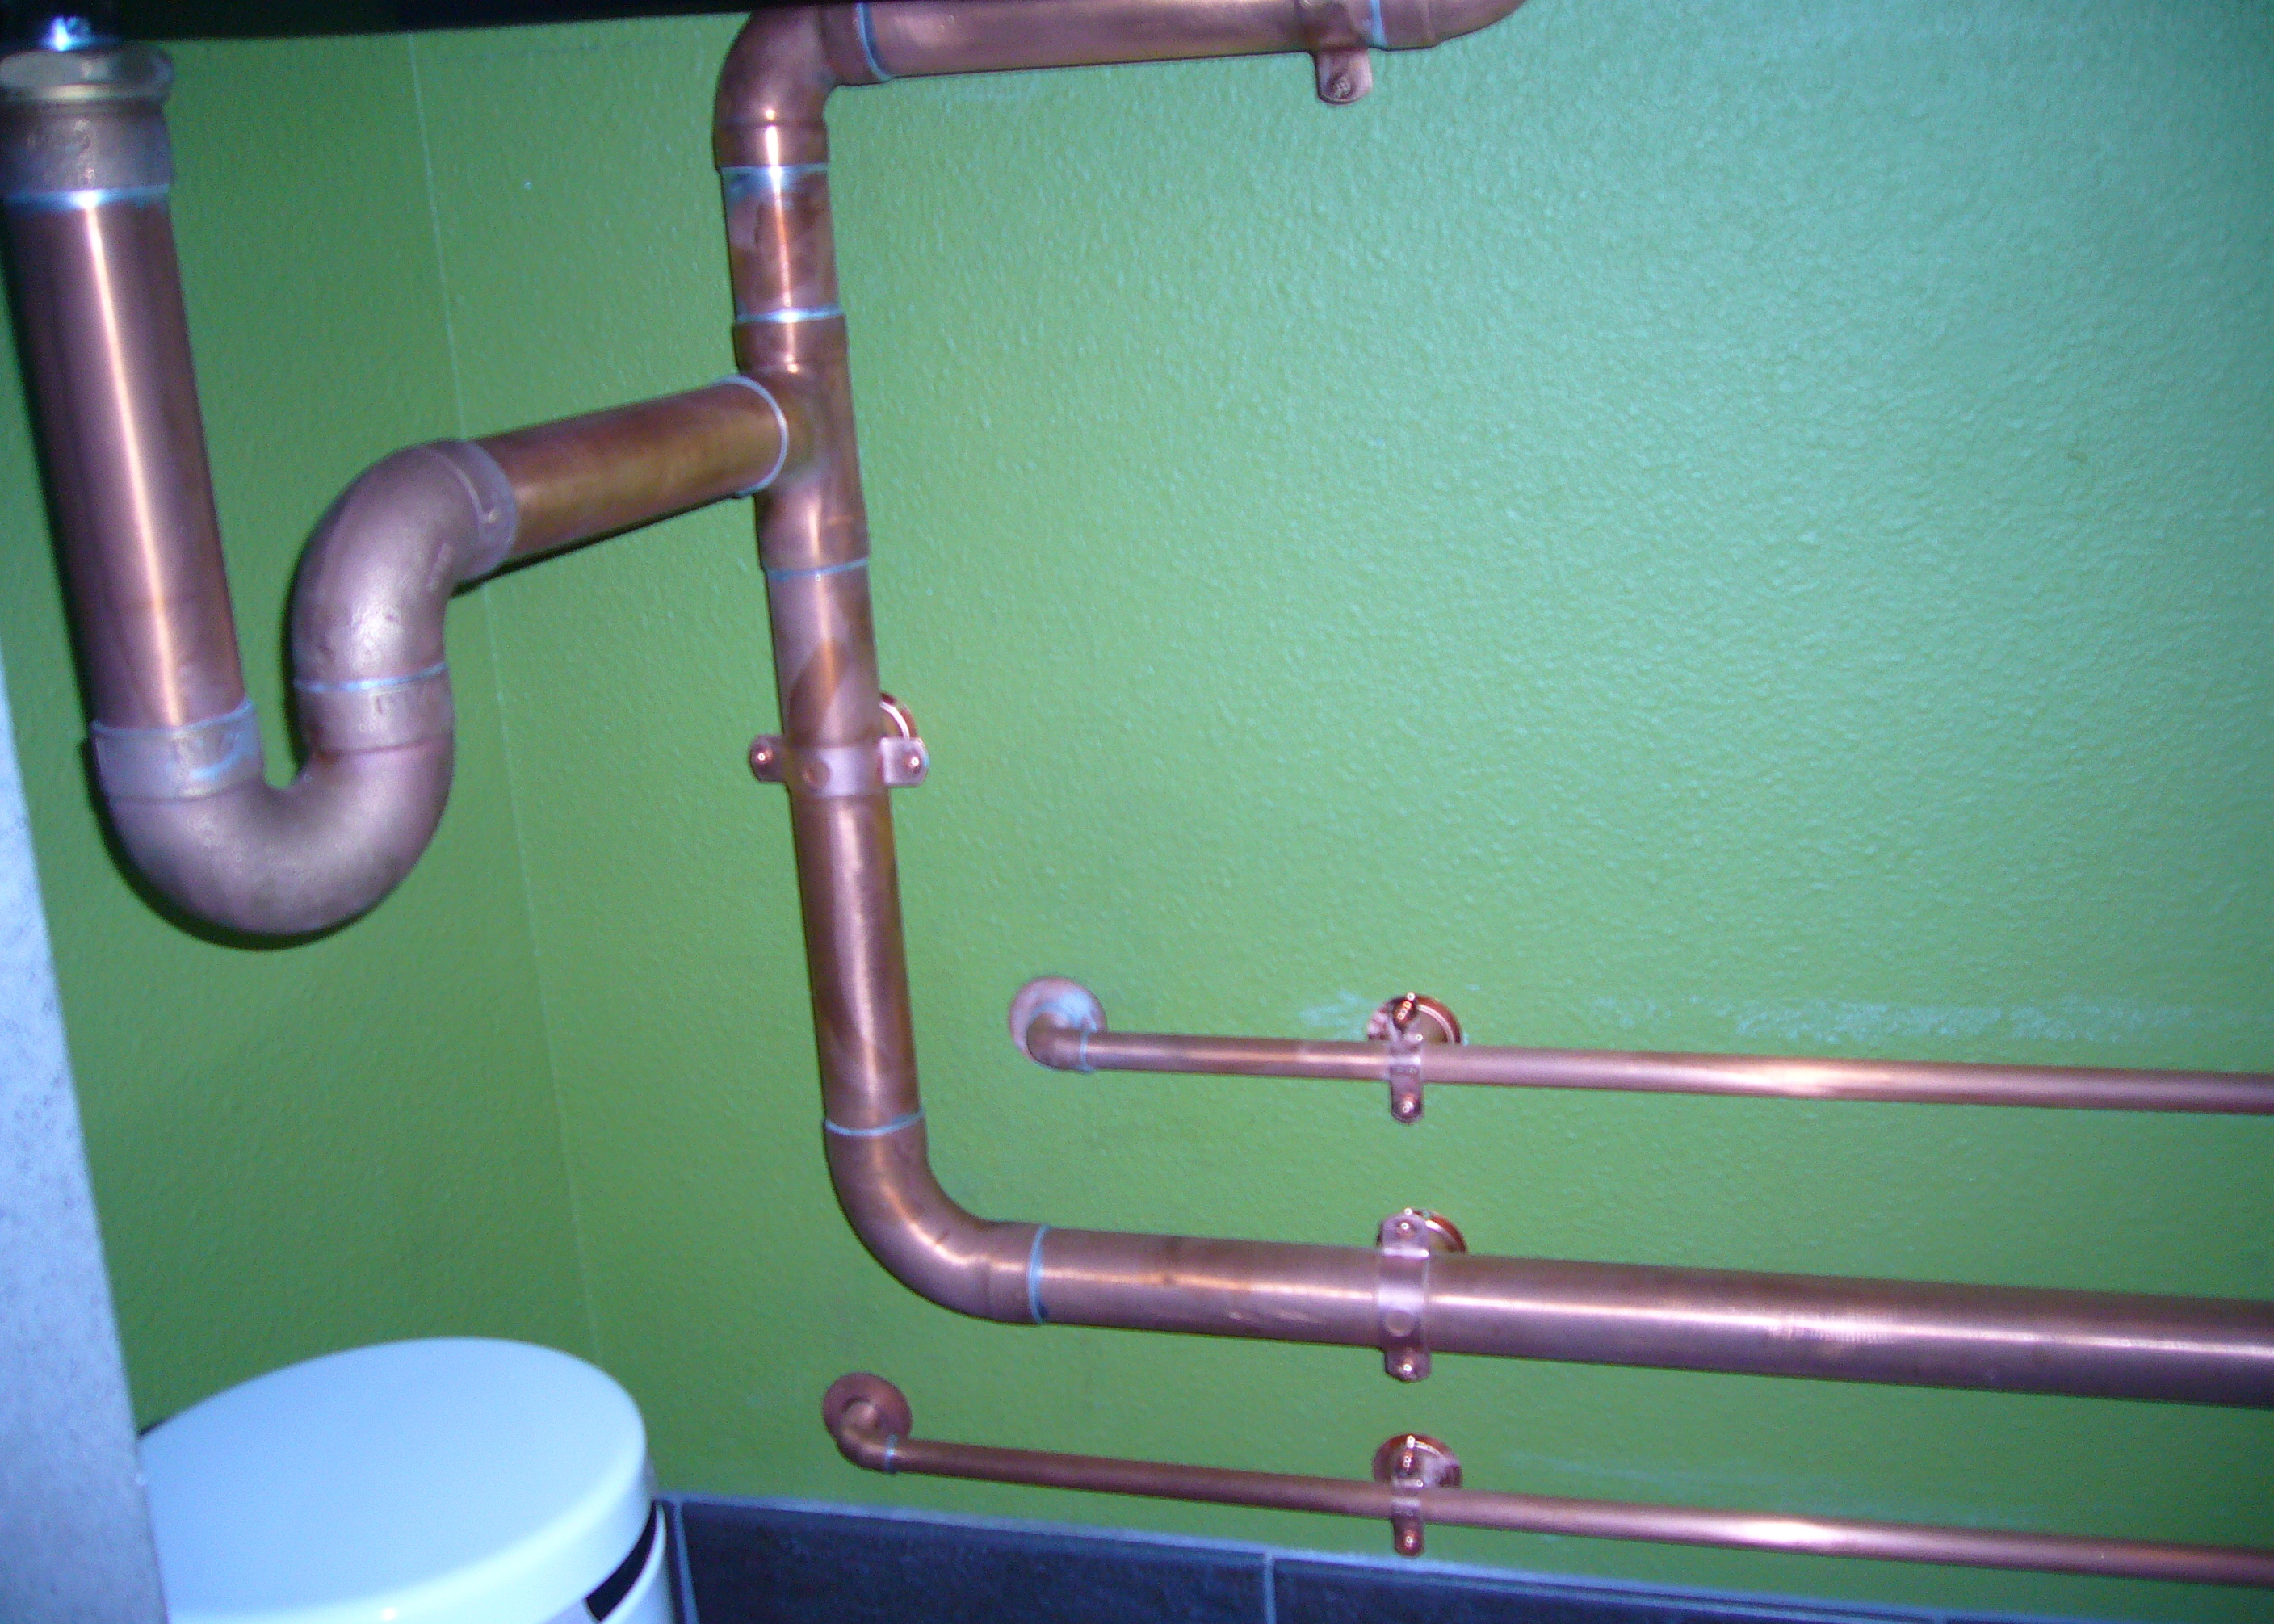 under sink copper ptrap drain lines and water lines attached to wall with copper bell hangers